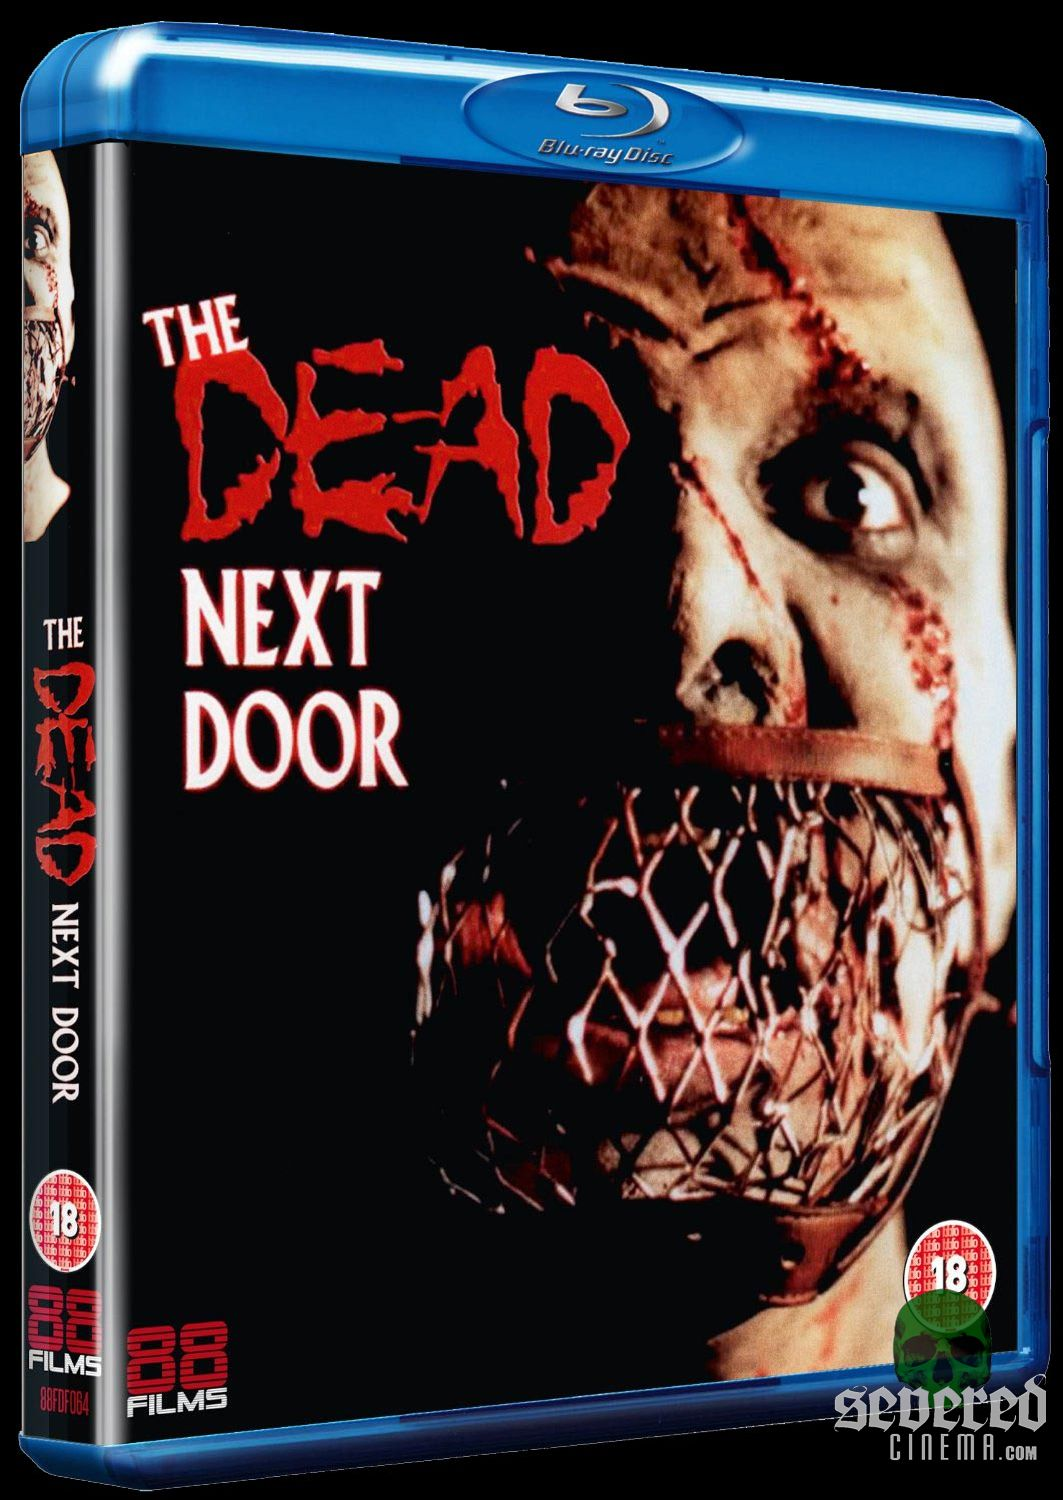 The Dead Next Door on Blu-ray from 88 Films on Severed Cinema